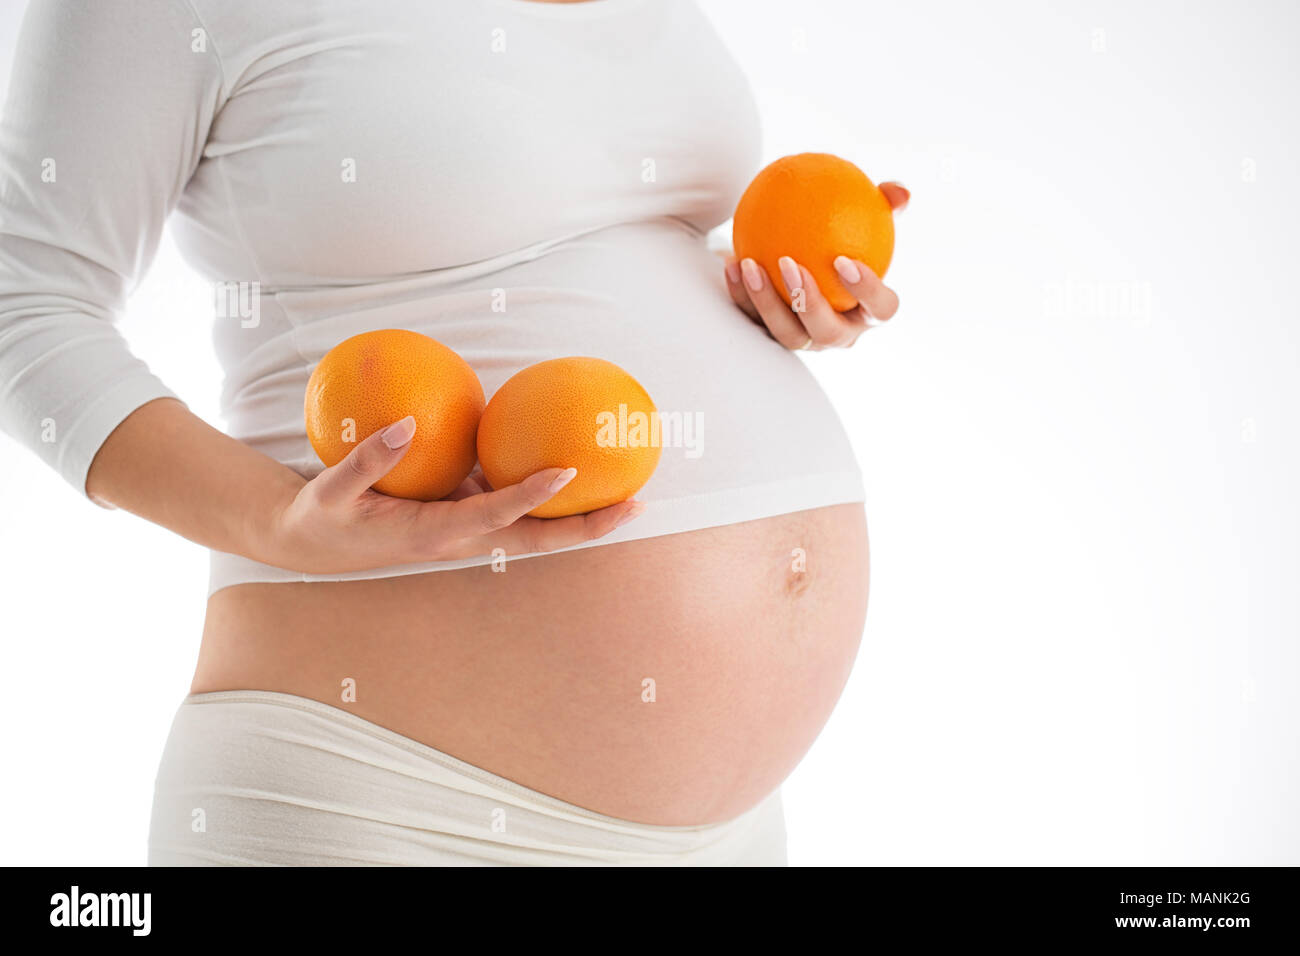 Pregnancy and heathy eating concept. Pregnant woman holding fresh oranges isolated on white background. - Stock Image